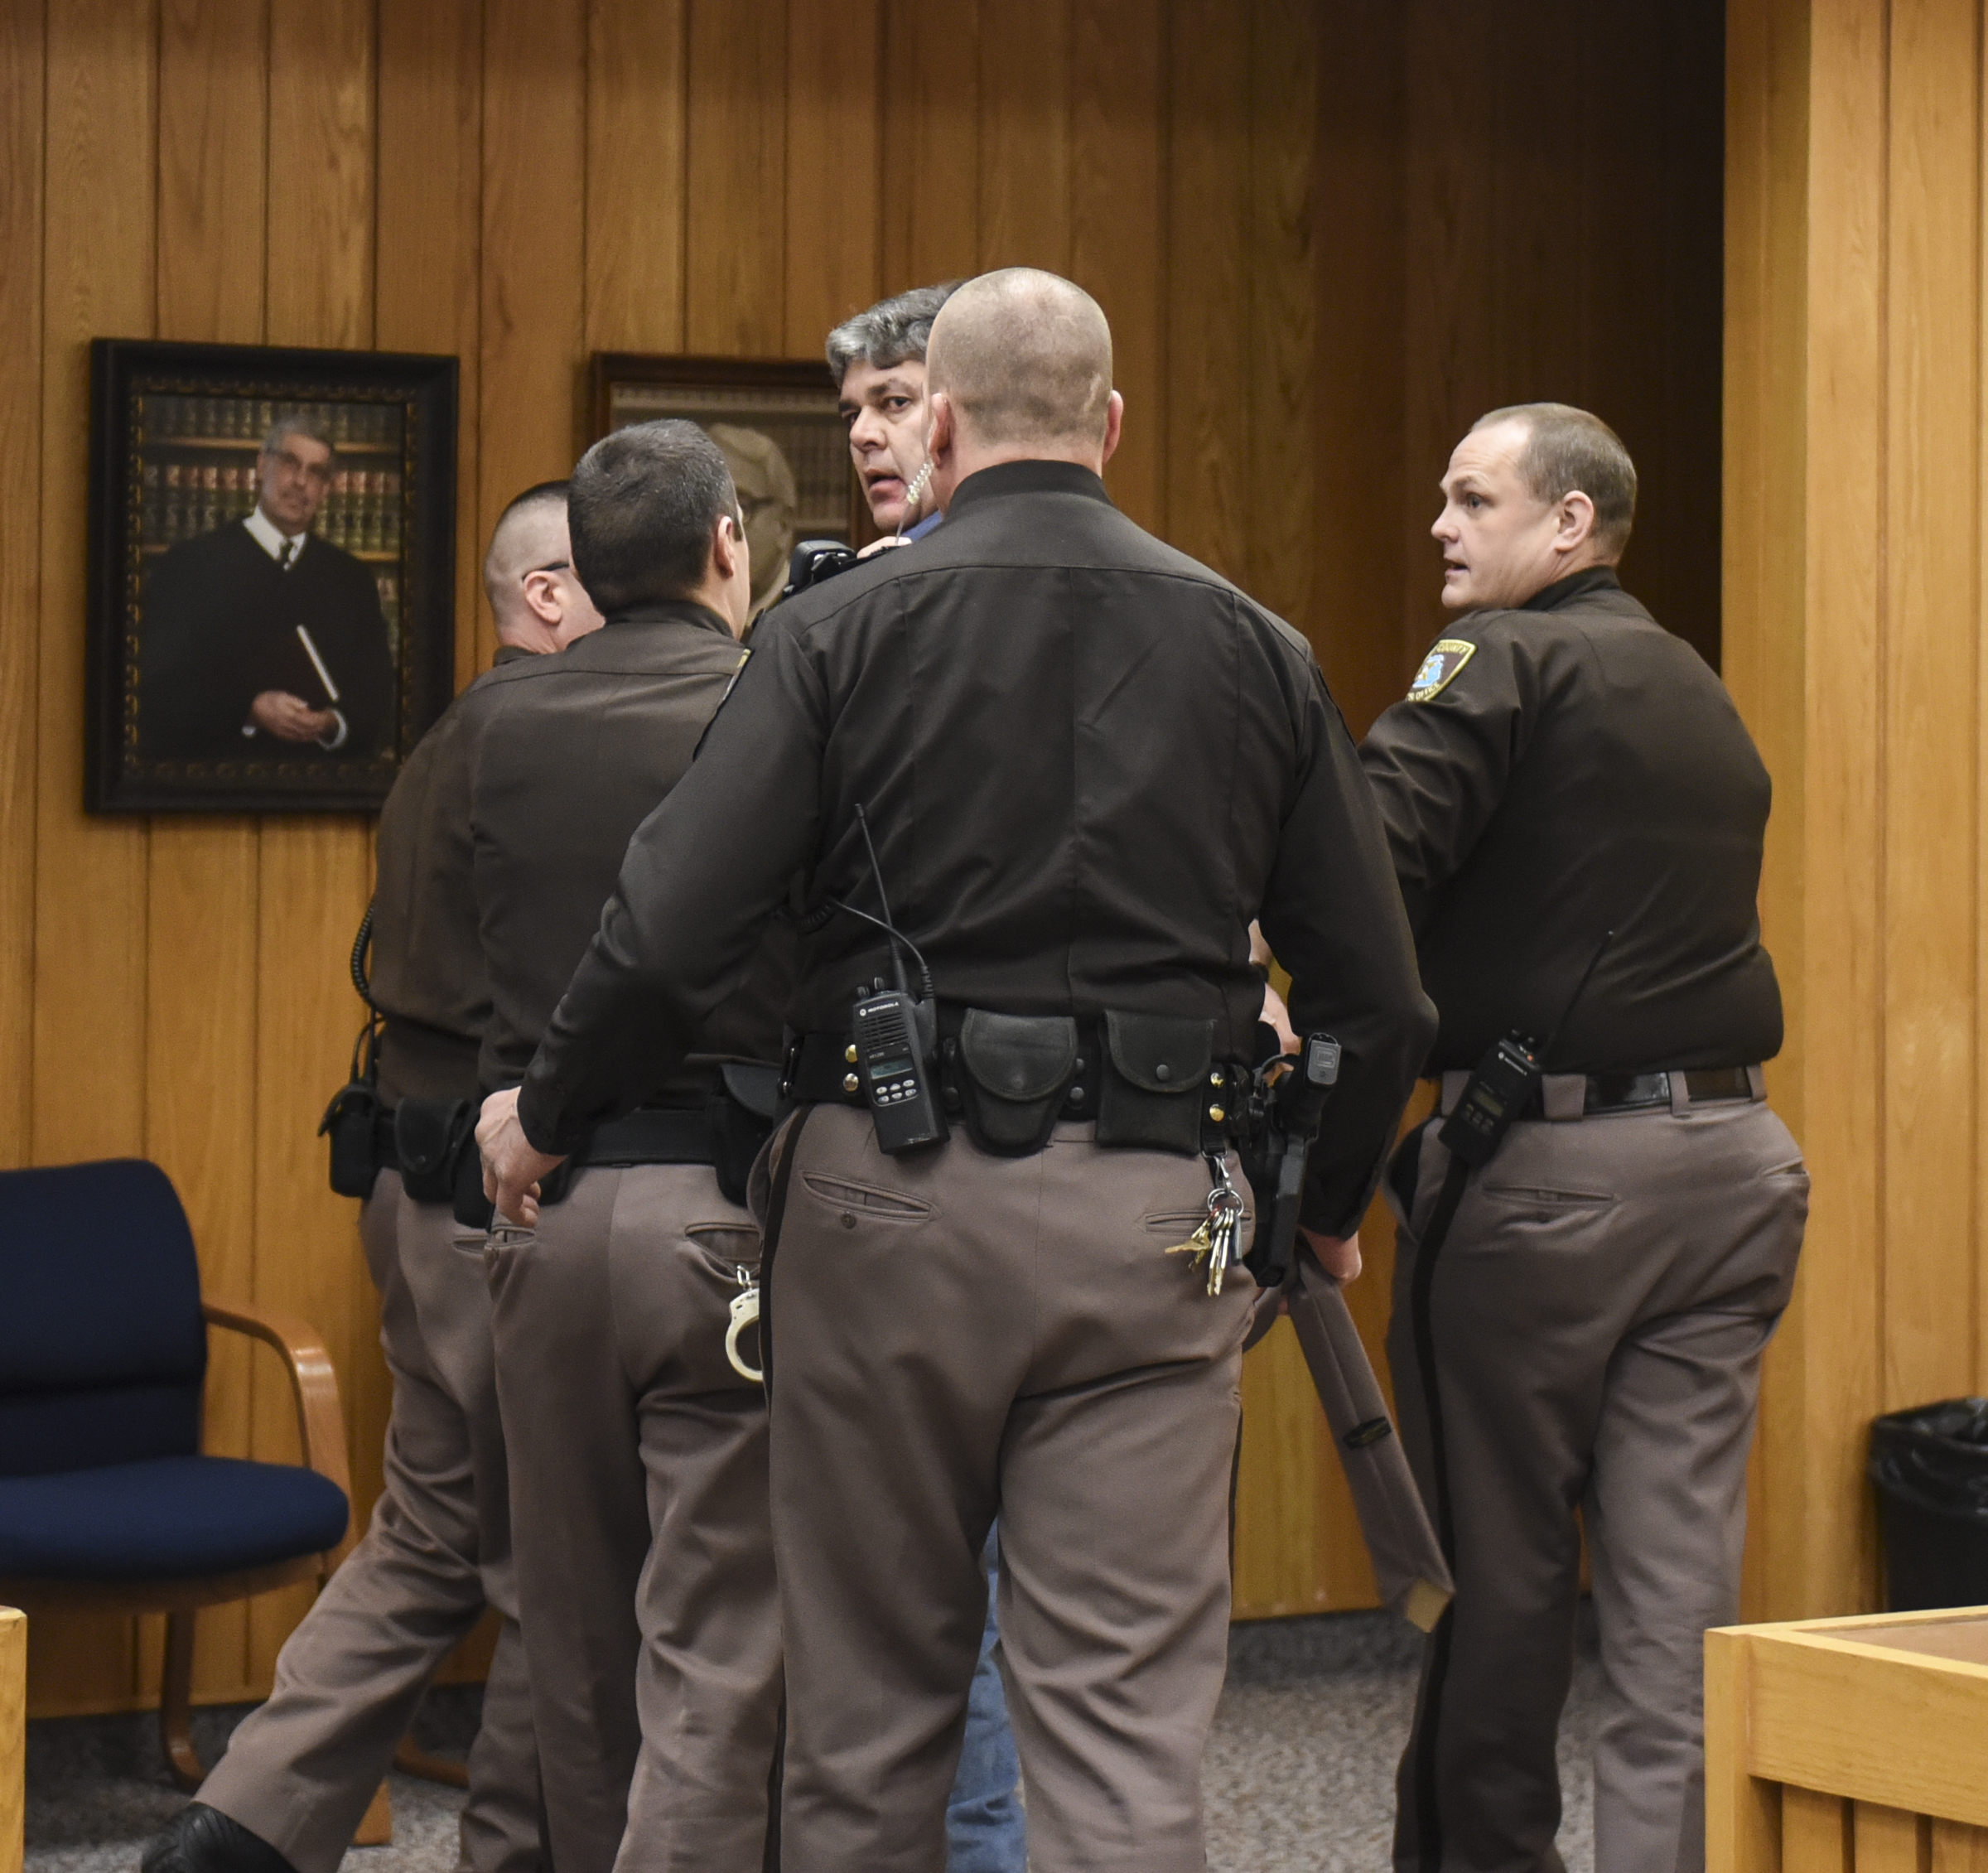 Randall Margraves, father of Lauren and Madison Margraves is detained after trying to attack Larry Nassar Friday, Feb. 2, 2018, in Eaton County Circuit Court during the second day of victim impact statements in Judge Janet Cunningham's courtroom in Charlotte, Mich.  The incident came during the third and final sentencing hearing for Nassar on sexual abuse charges. The charges in this case focus on his work with Twistars, an elite Michigan gymnastics club. (Matthew Dae Smith /Lansing State Journal via AP)